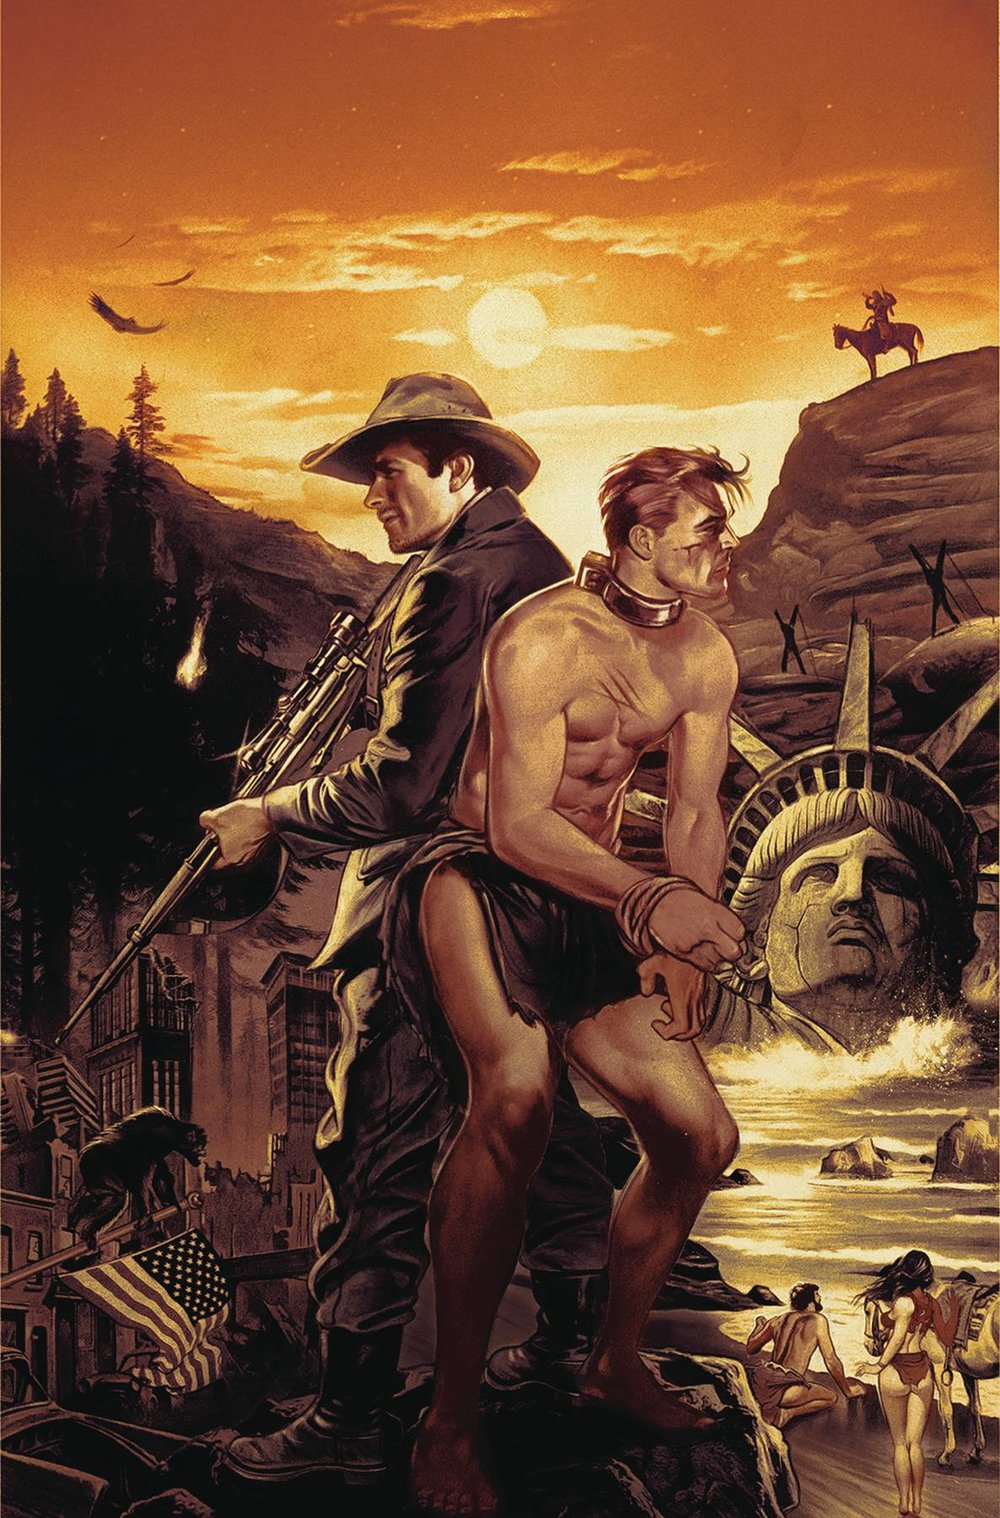 PLANET OF THE APES TIME OF MAN #1